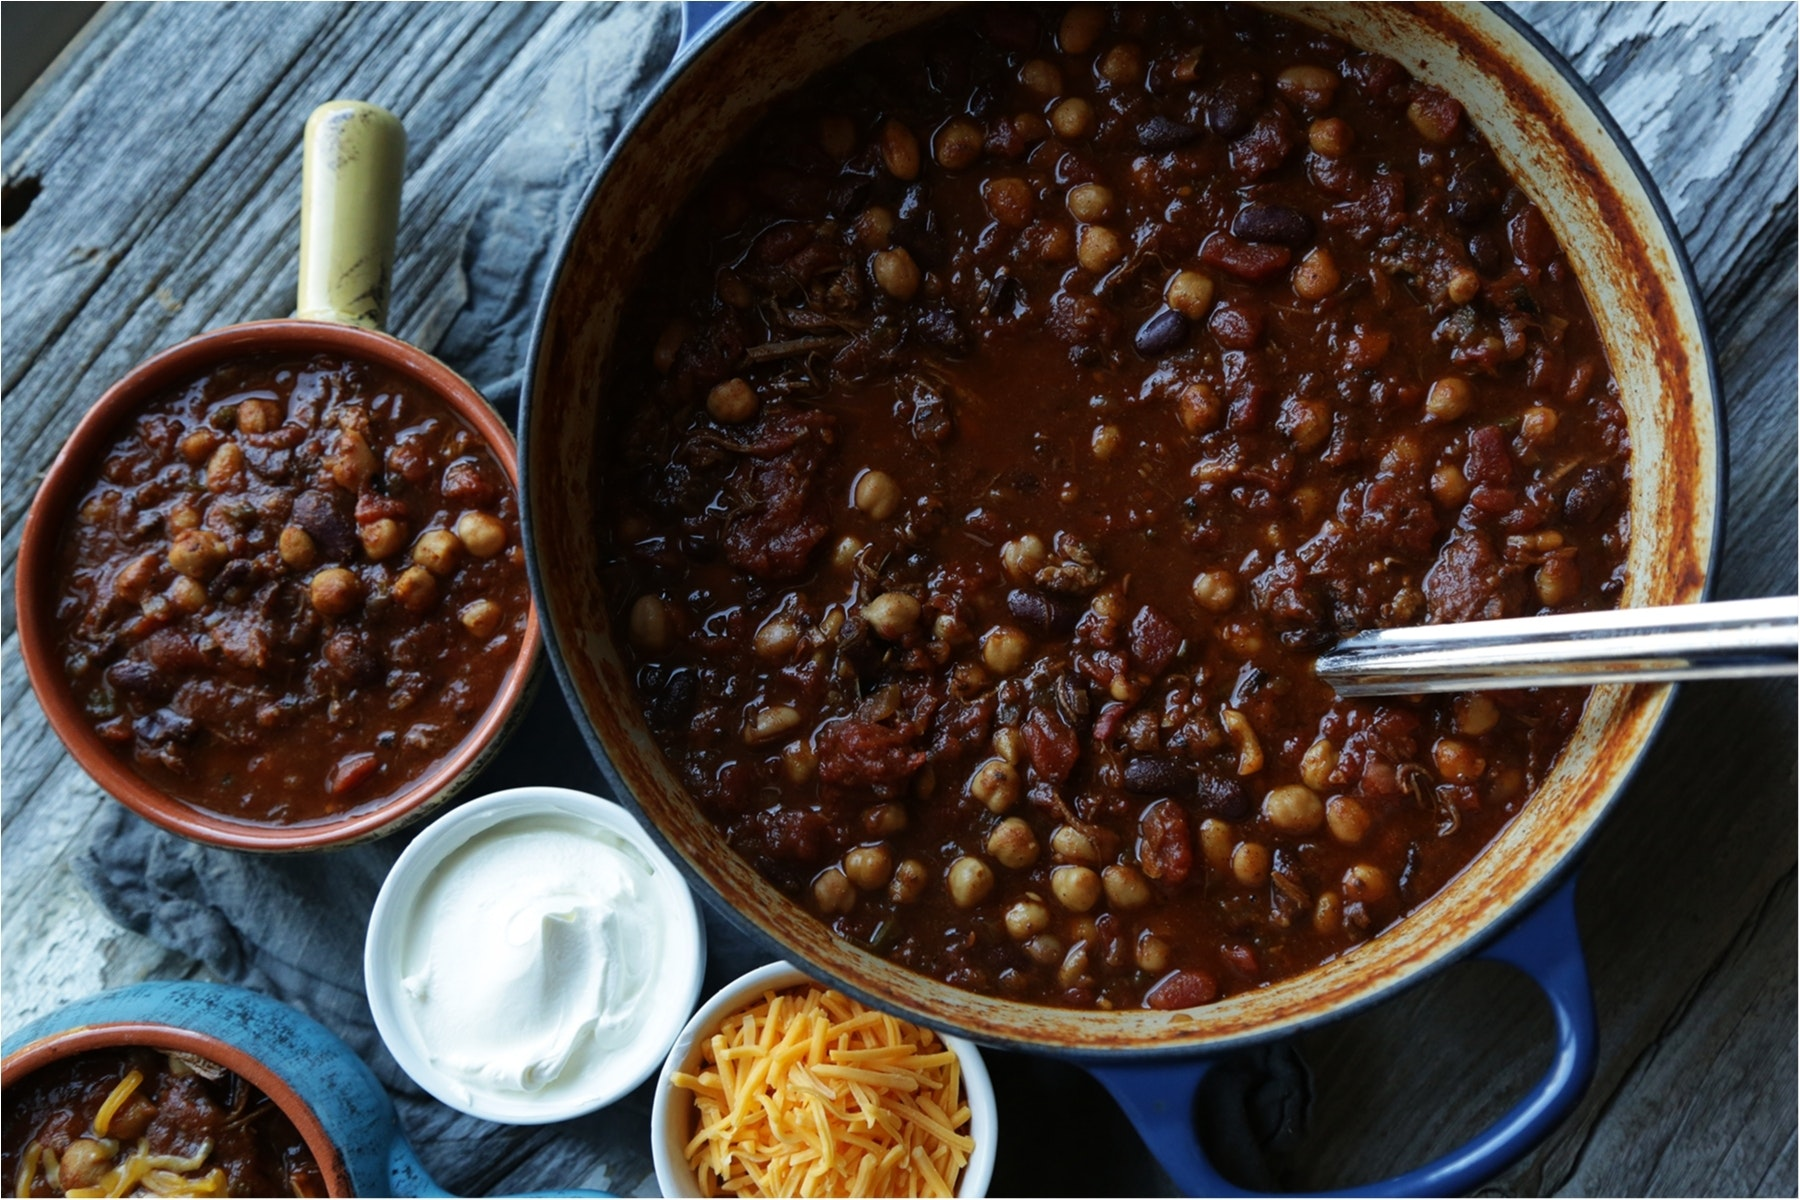 Smoked brisket chili with the toppings